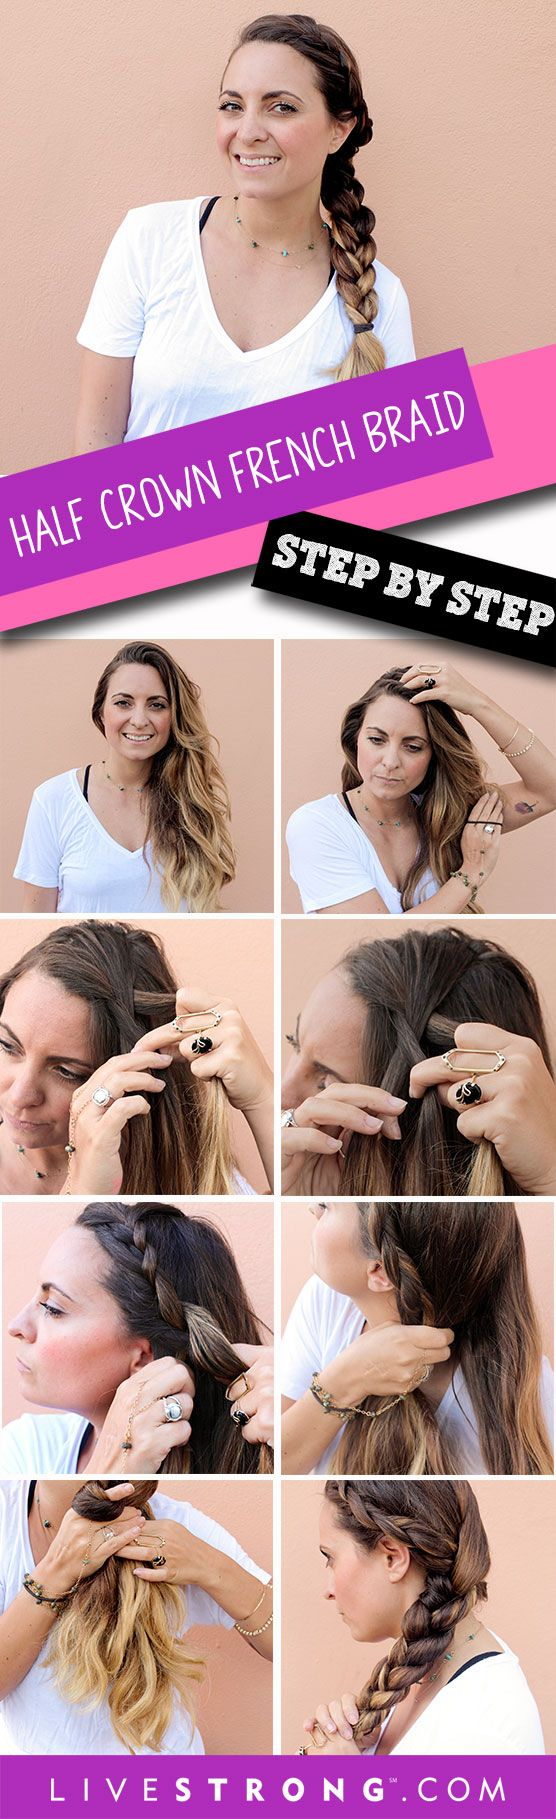 "When you�re working out, there's nothing more annoying than having to stop mid-set to fix your hair. Here's how to style your hair in a half crown french braid to avoid the mid-workout pause to ""fix your hair."""